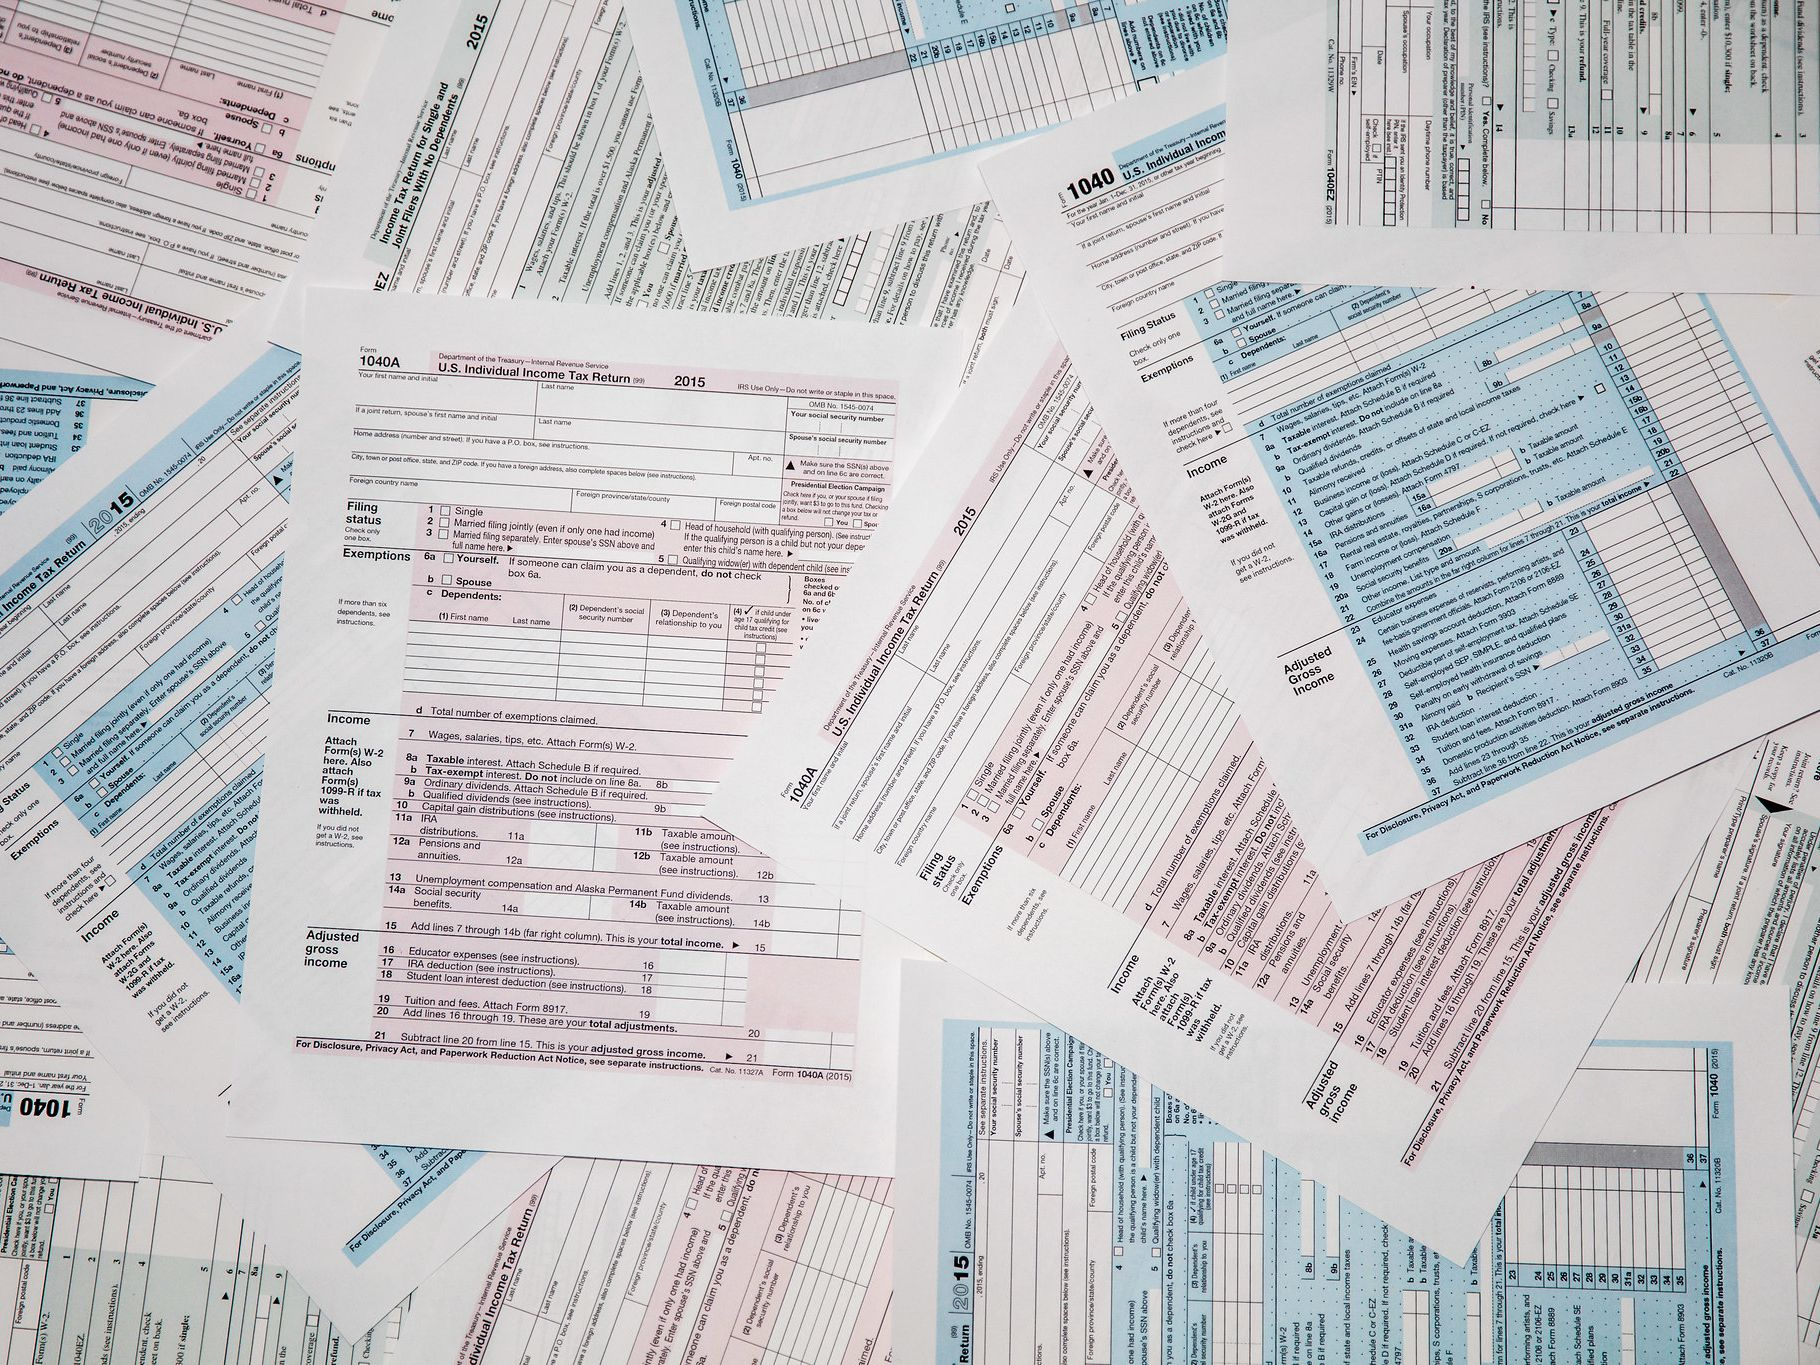 How Do IRS Forms 1040EZ, 1040A and 1040 Differ?